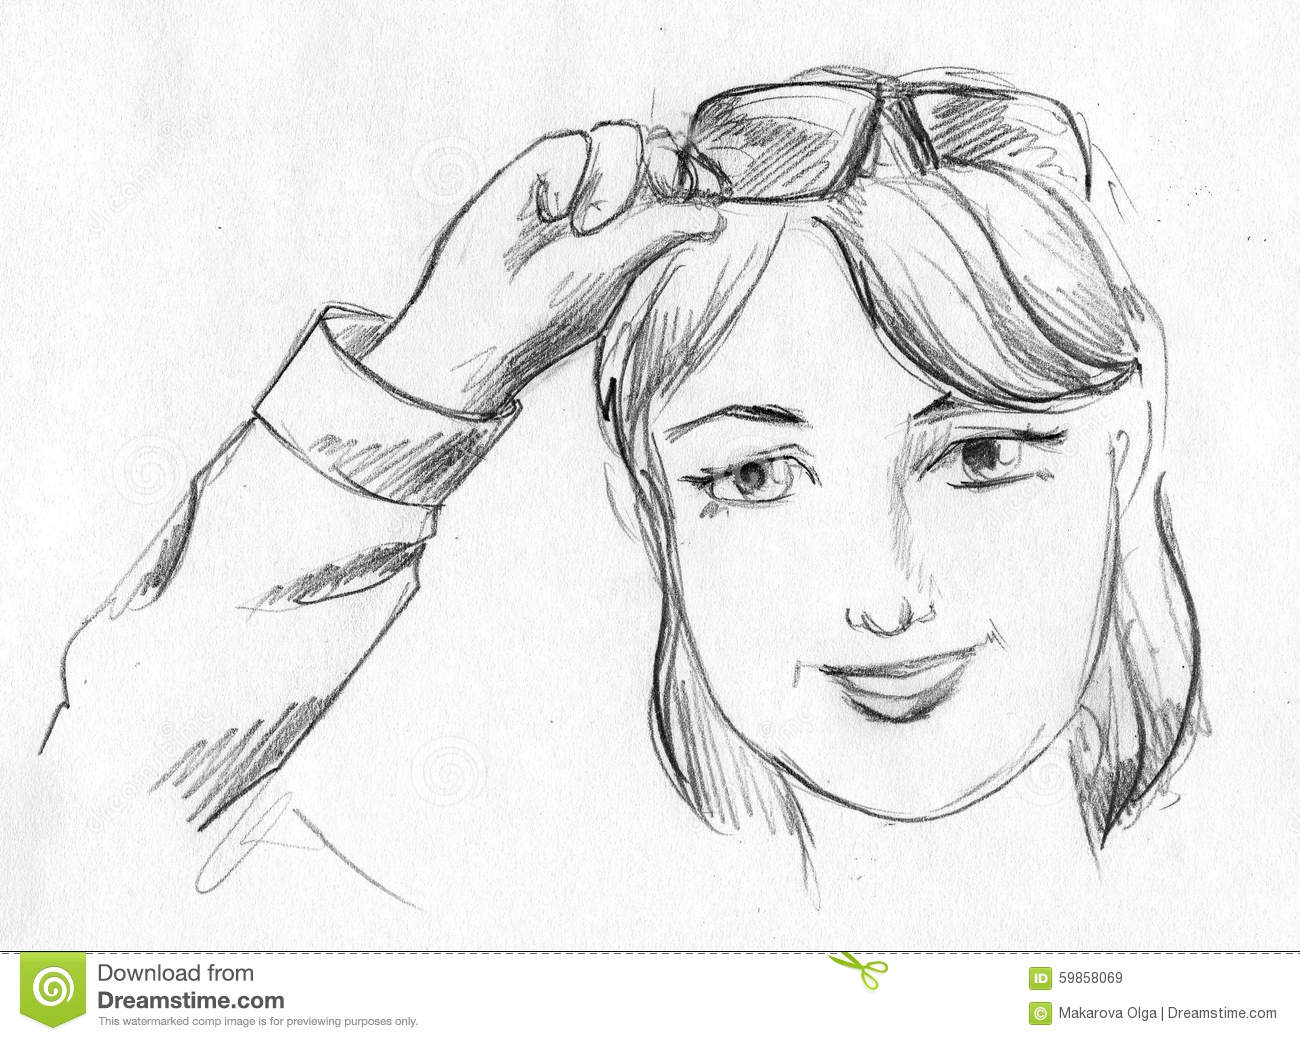 Girl with glasses up pencil sketch